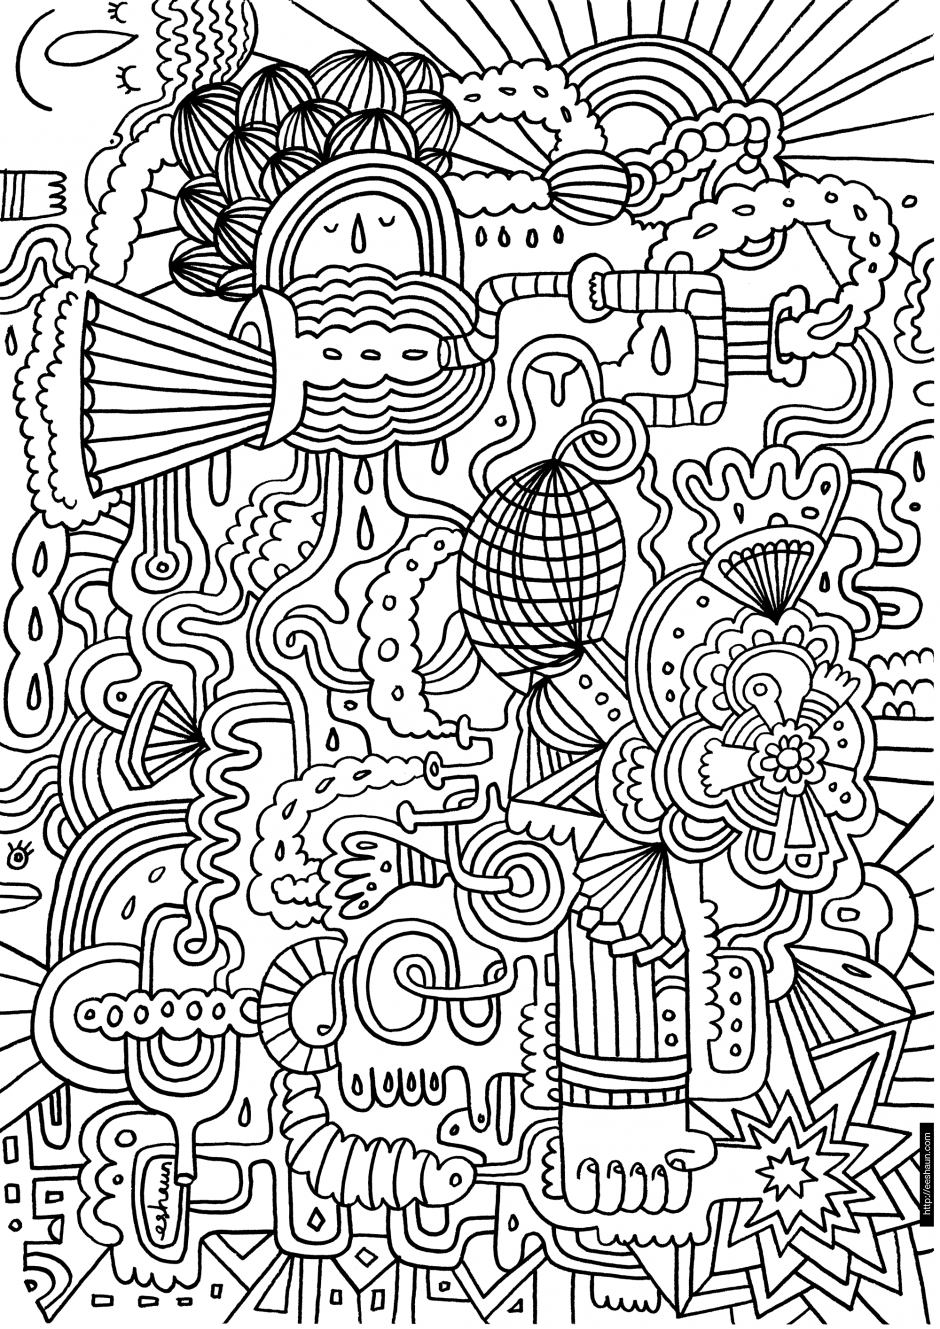 pattern coloring pages for teens - photo#19